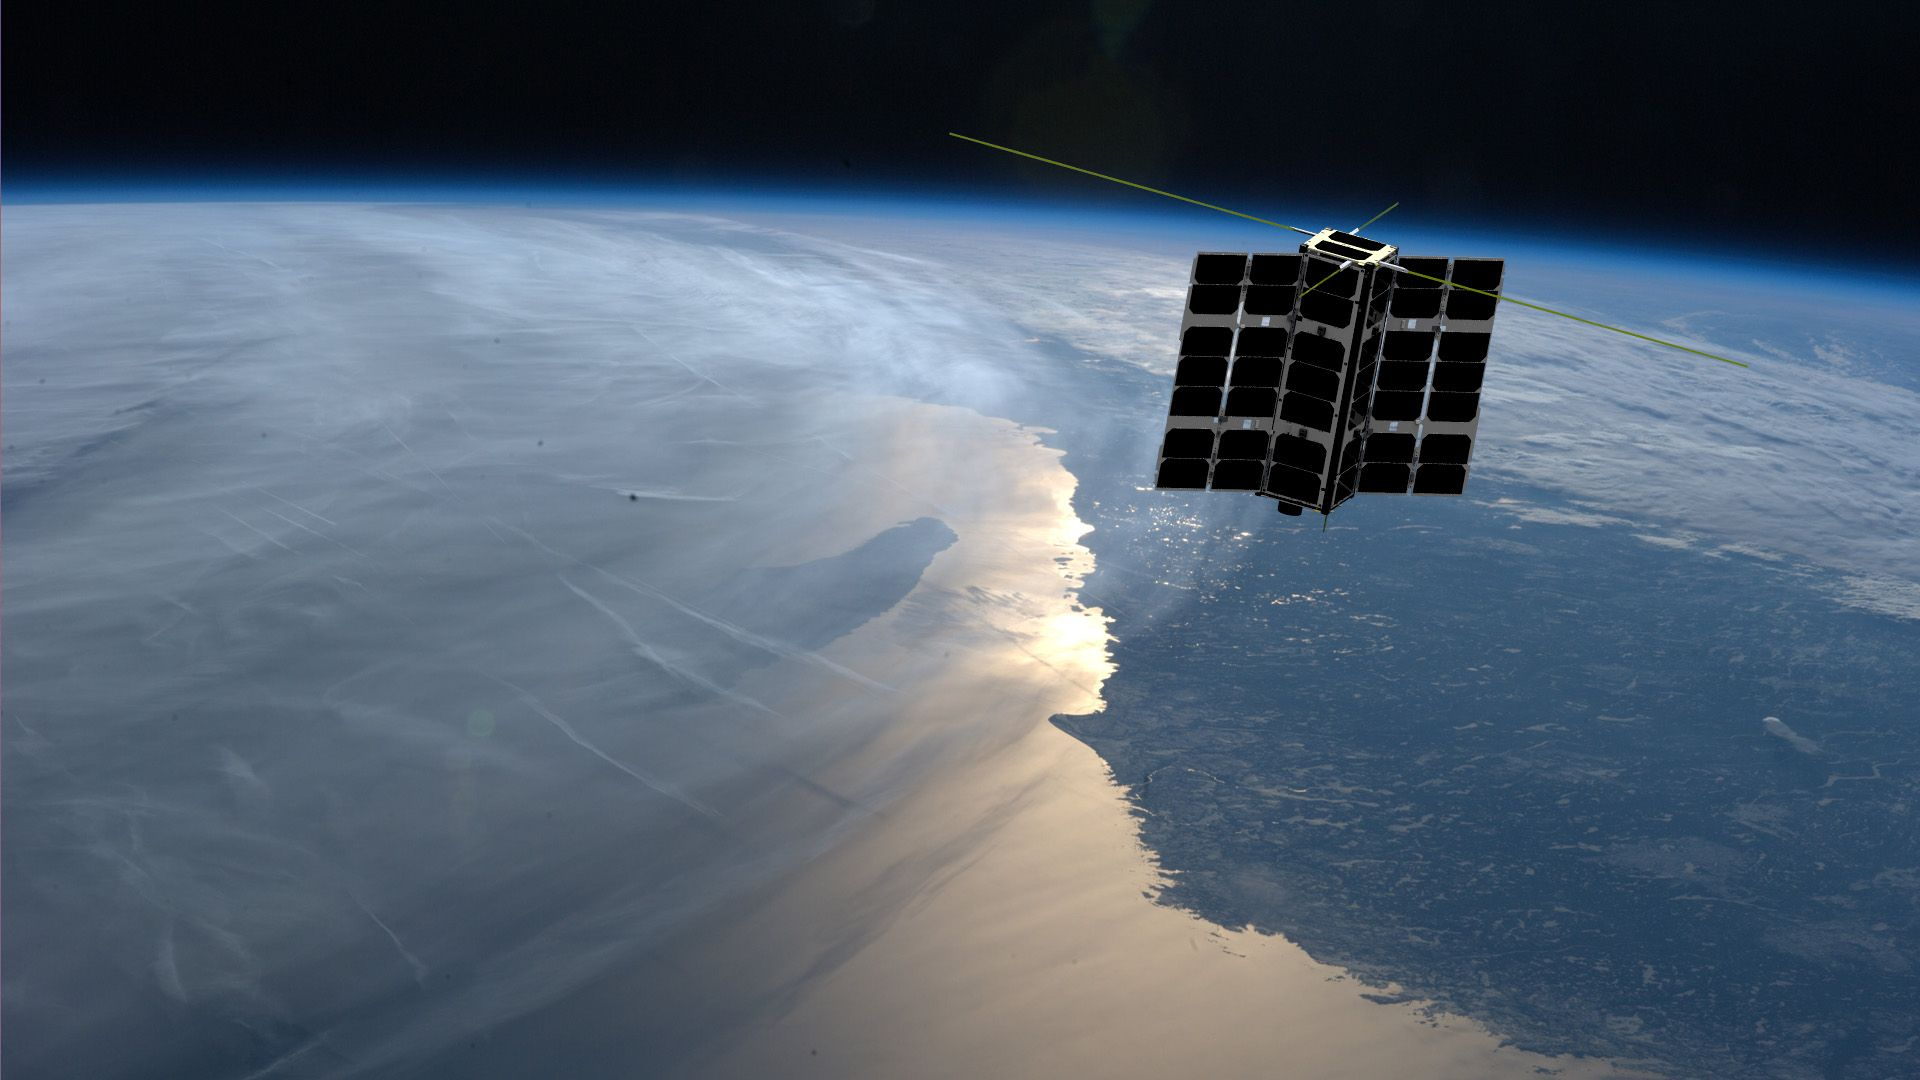 Hawkeye360 expects to add to its constellation of three satellites by the end of this year. This will widen the geographical and frequency coverage offered by the firm. (Photo: HawkEye360)